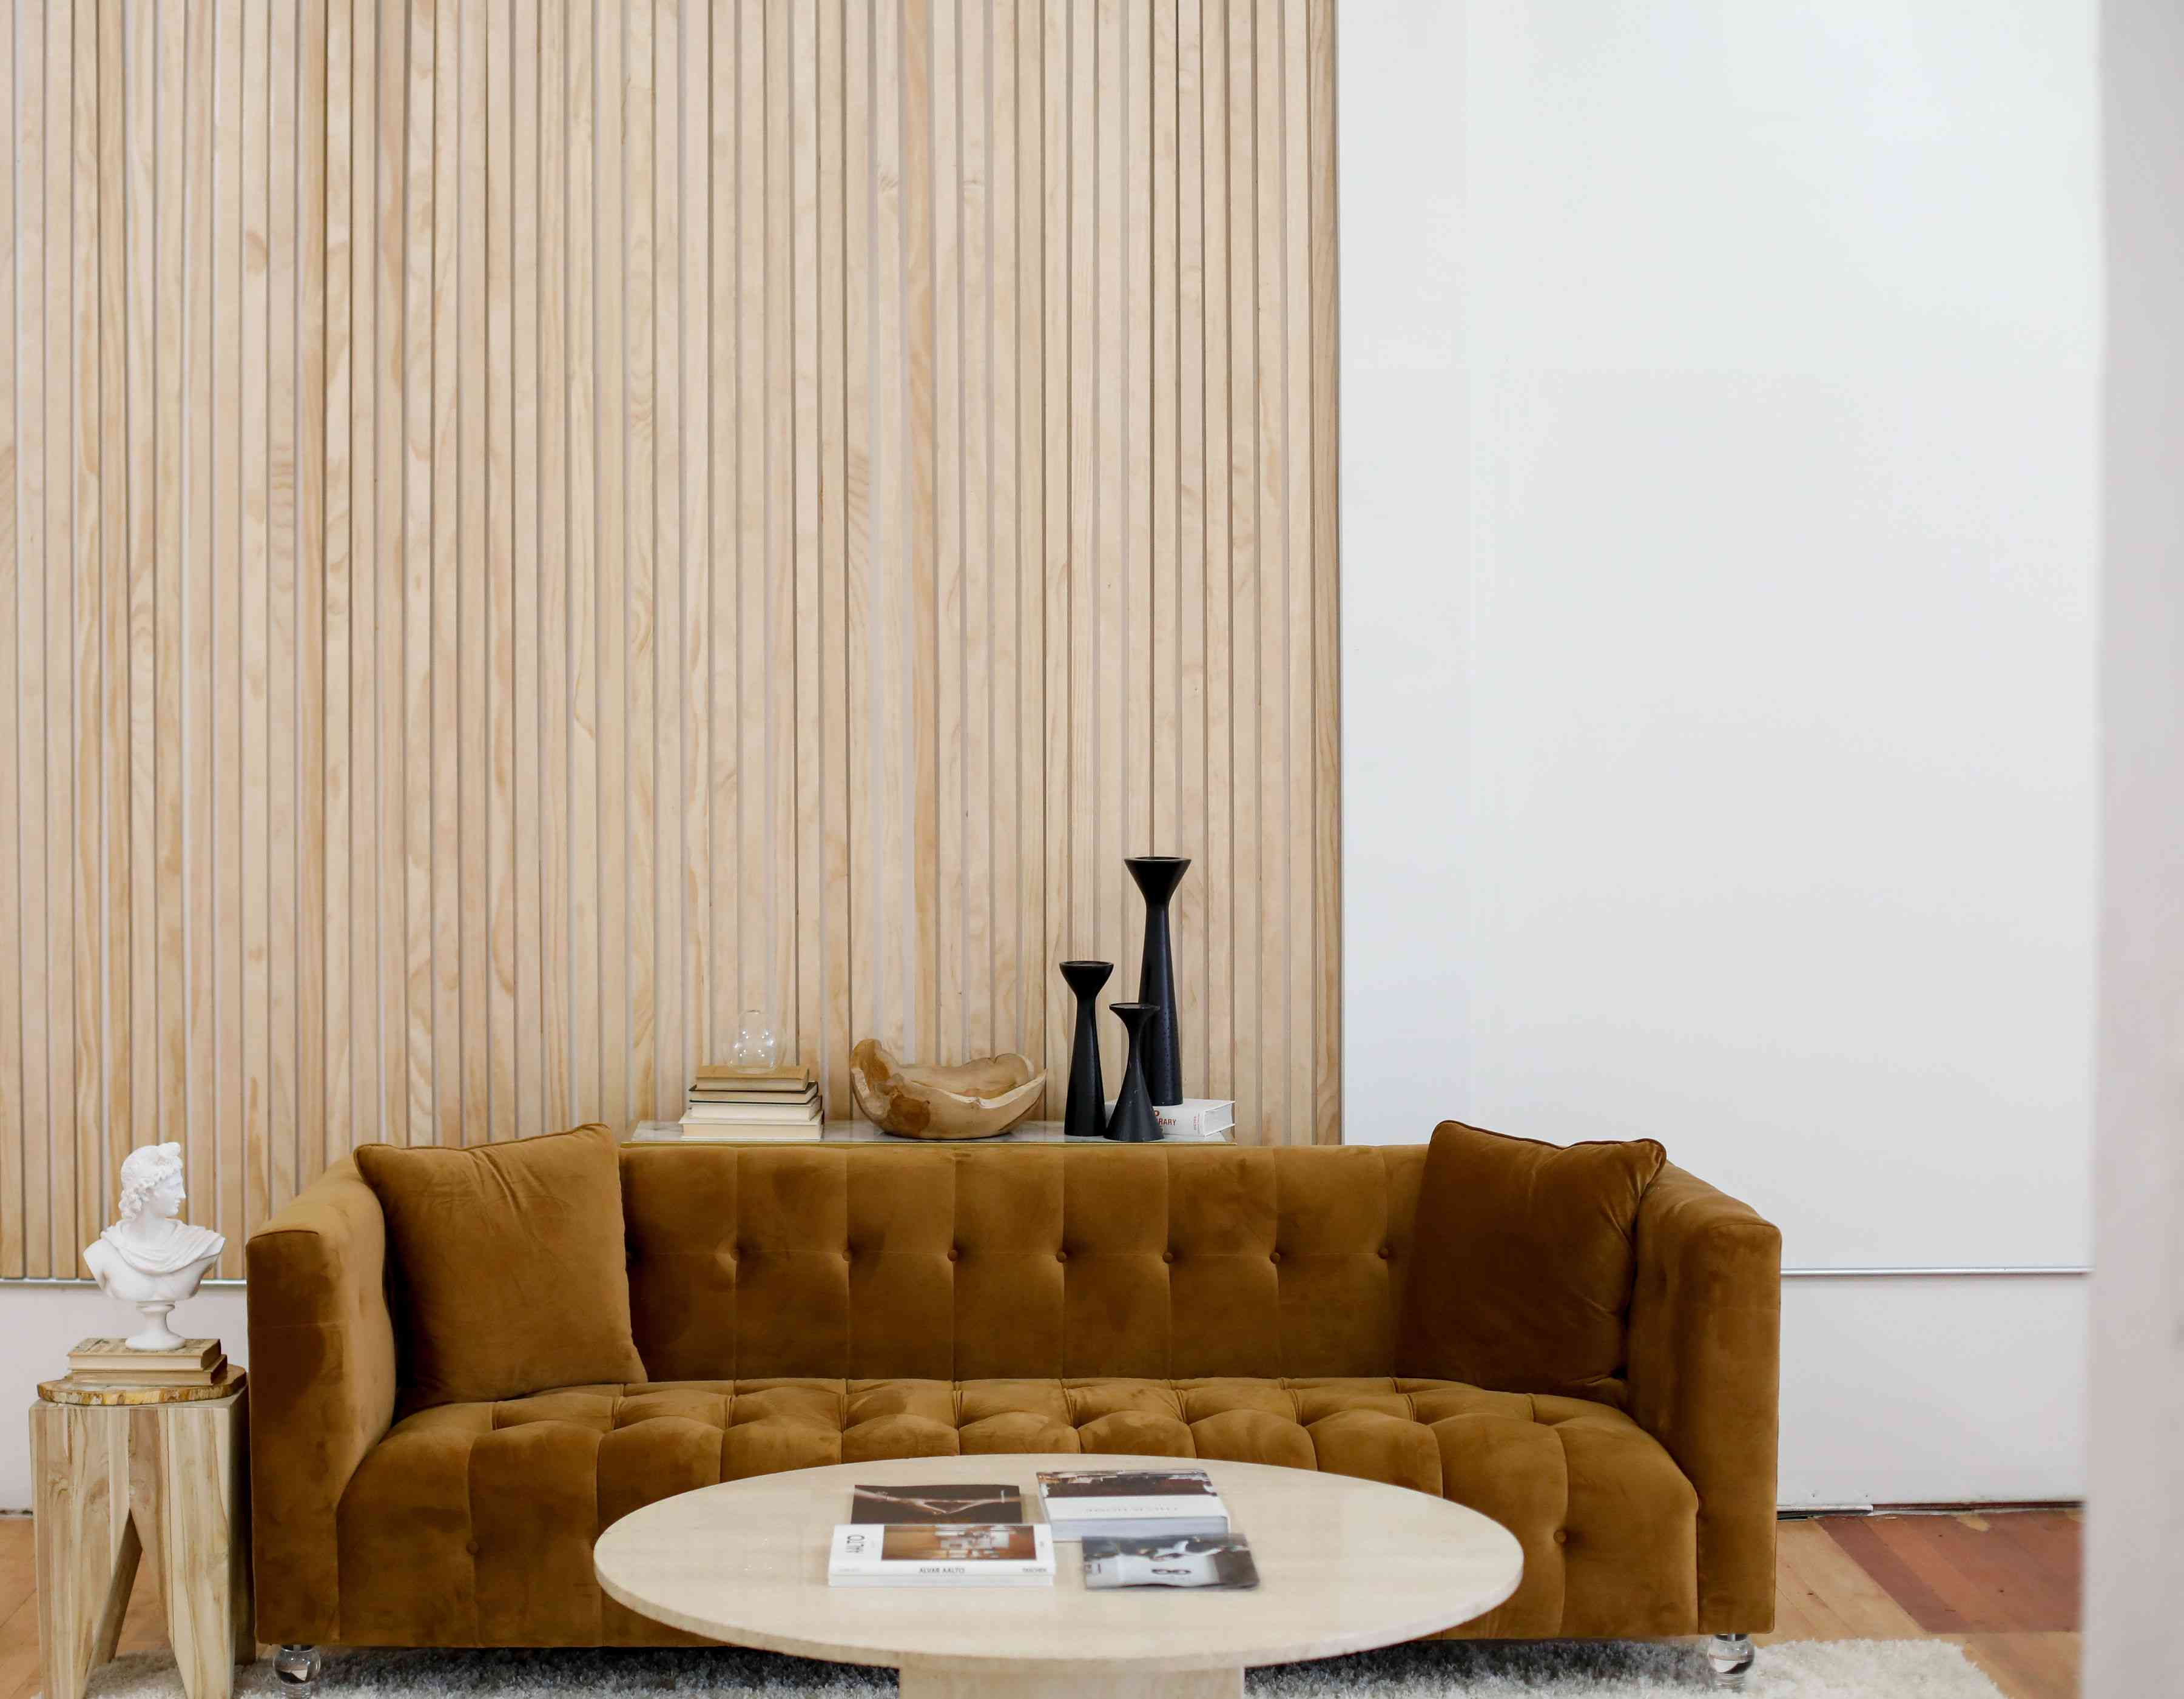 wood paneled wall with brown couch